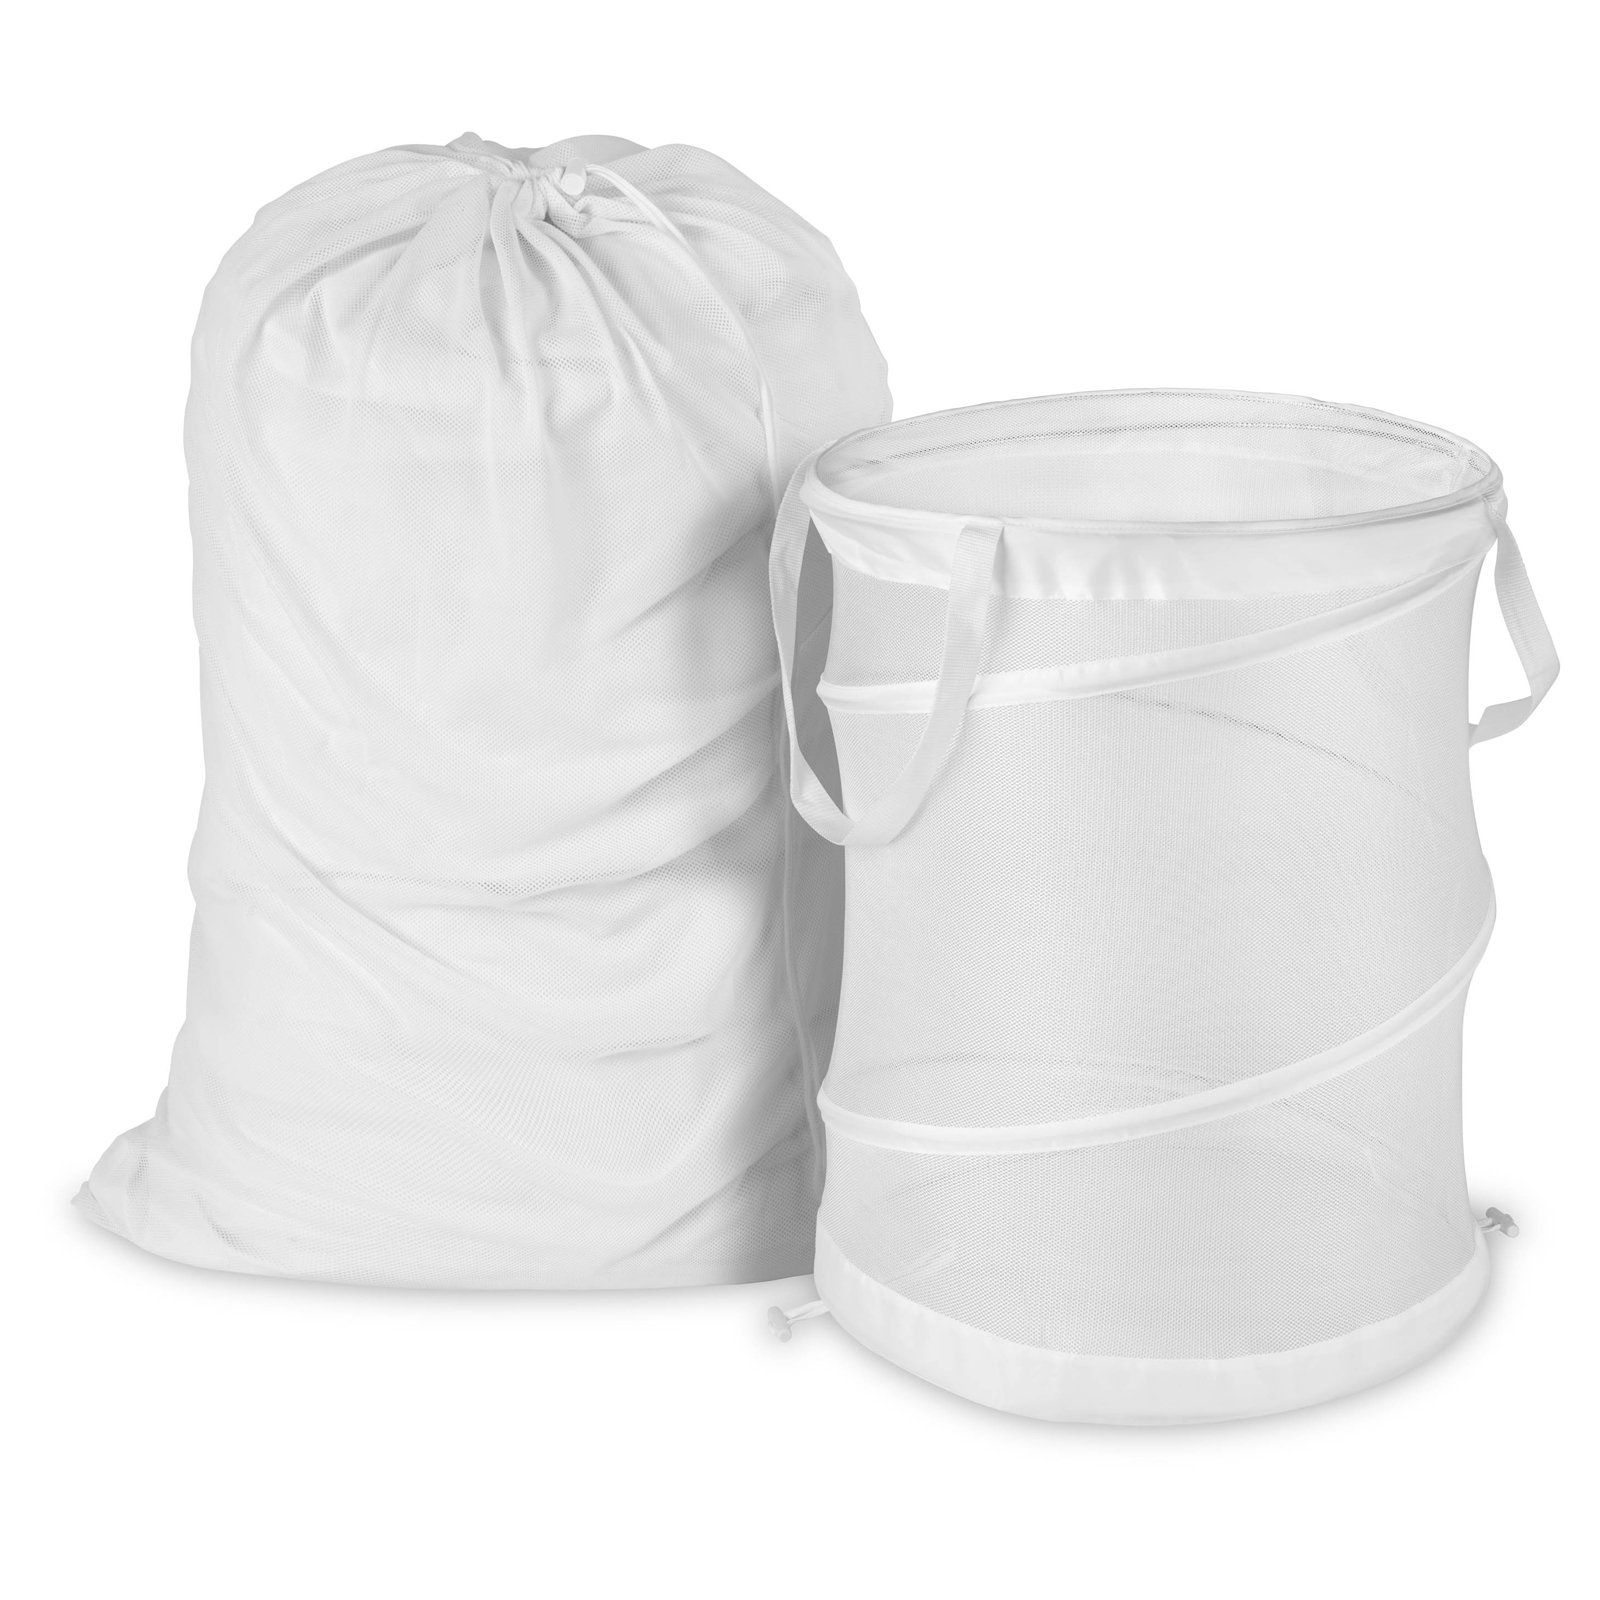 Laundry Bags At Walmart Amusing Honey Can Do Mesh Laundry Bag And Hamper Kit  Ldyx03017  Products